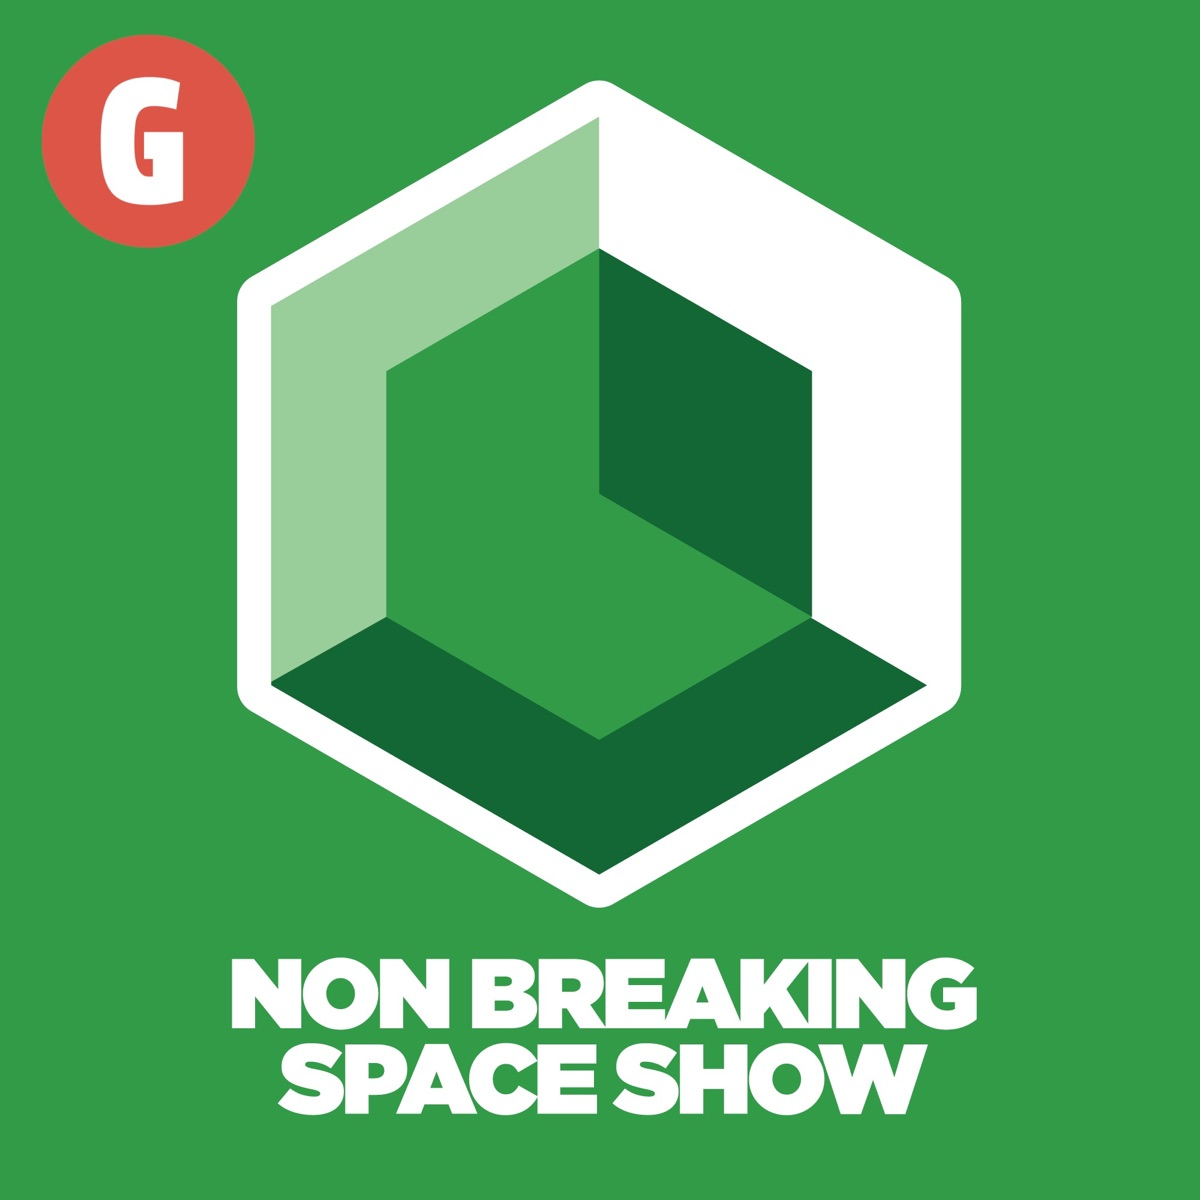 Non Breaking Space Show